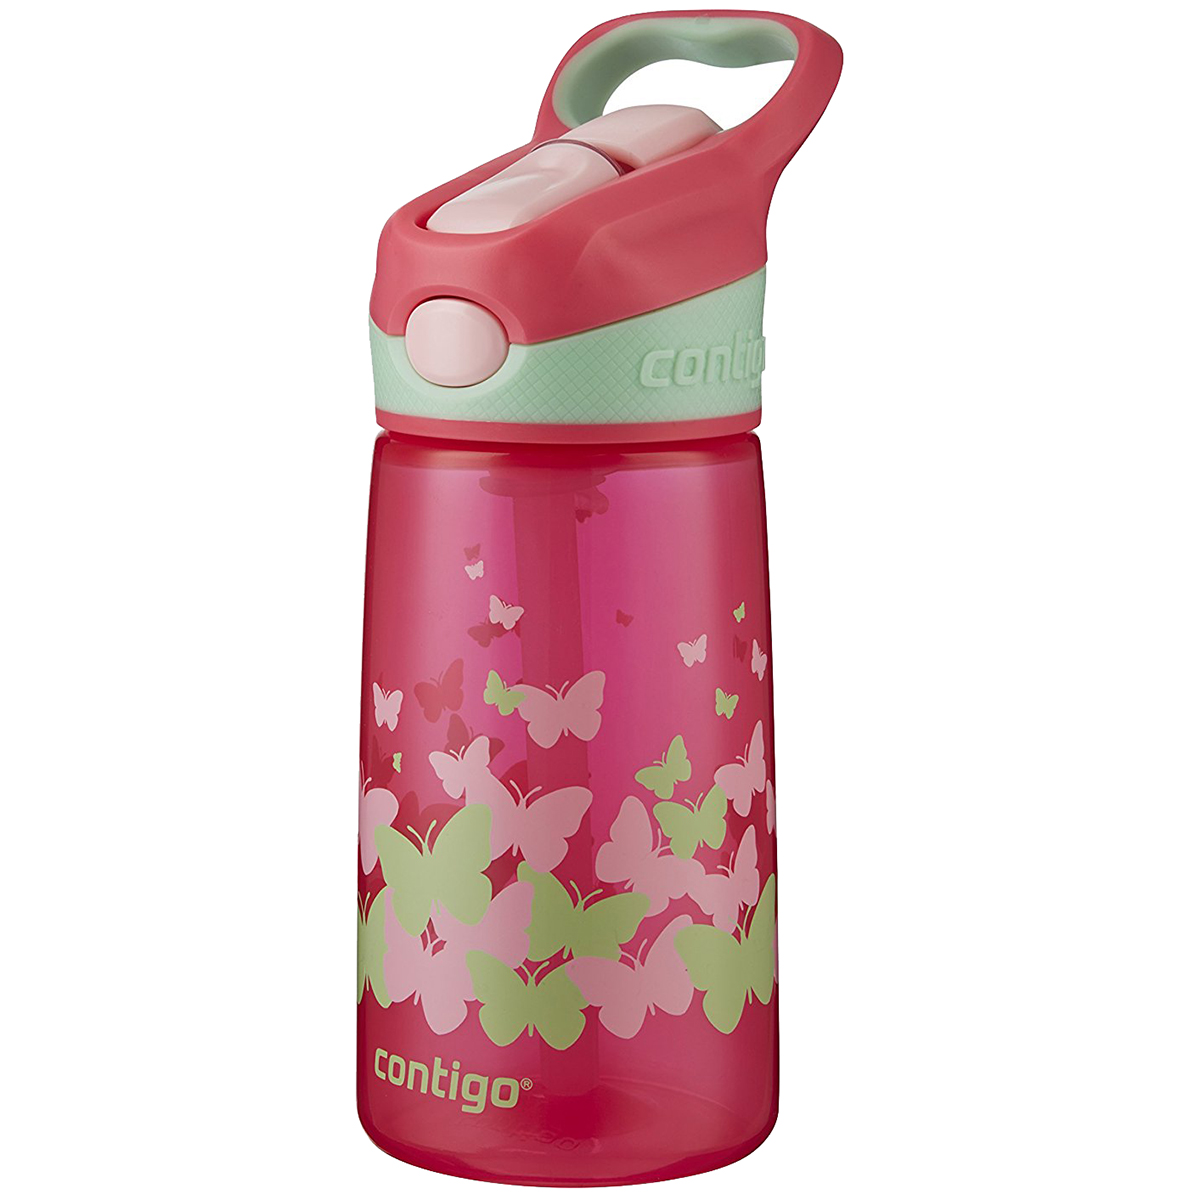 Contigo-14-oz-Kid-039-s-Striker-Autospout-Water-Bottle miniature 49